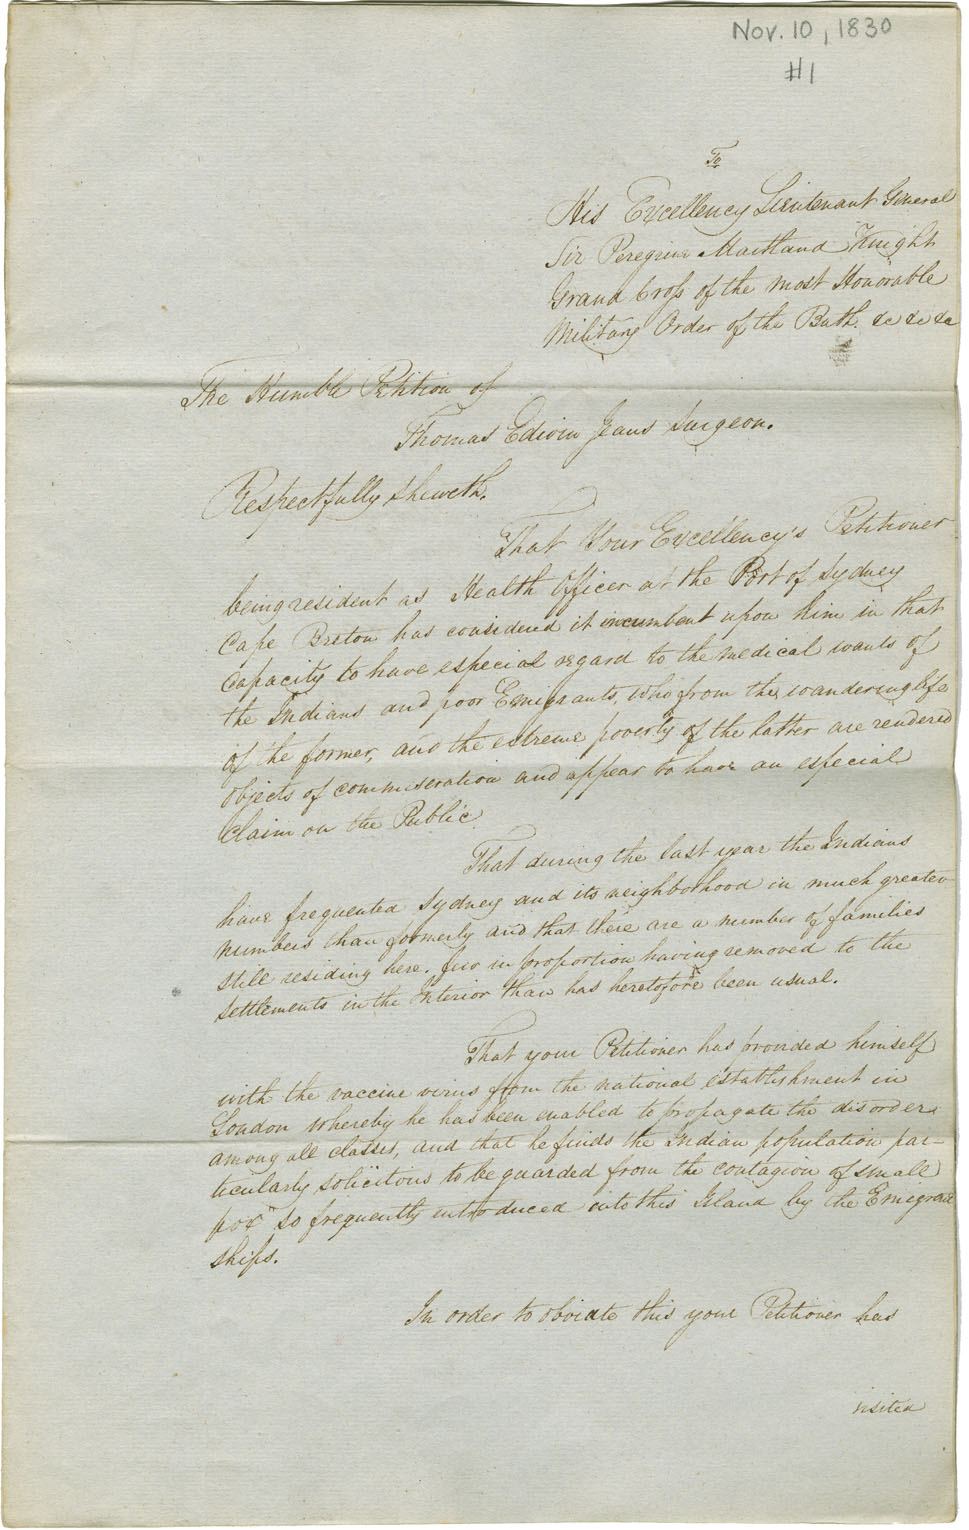 Petition of Edwin Jeans, Surgeon and Health Officer at Sydney, Cape Breton, praying remuneration for vaccinating several Mi'kmaq families for small pox.